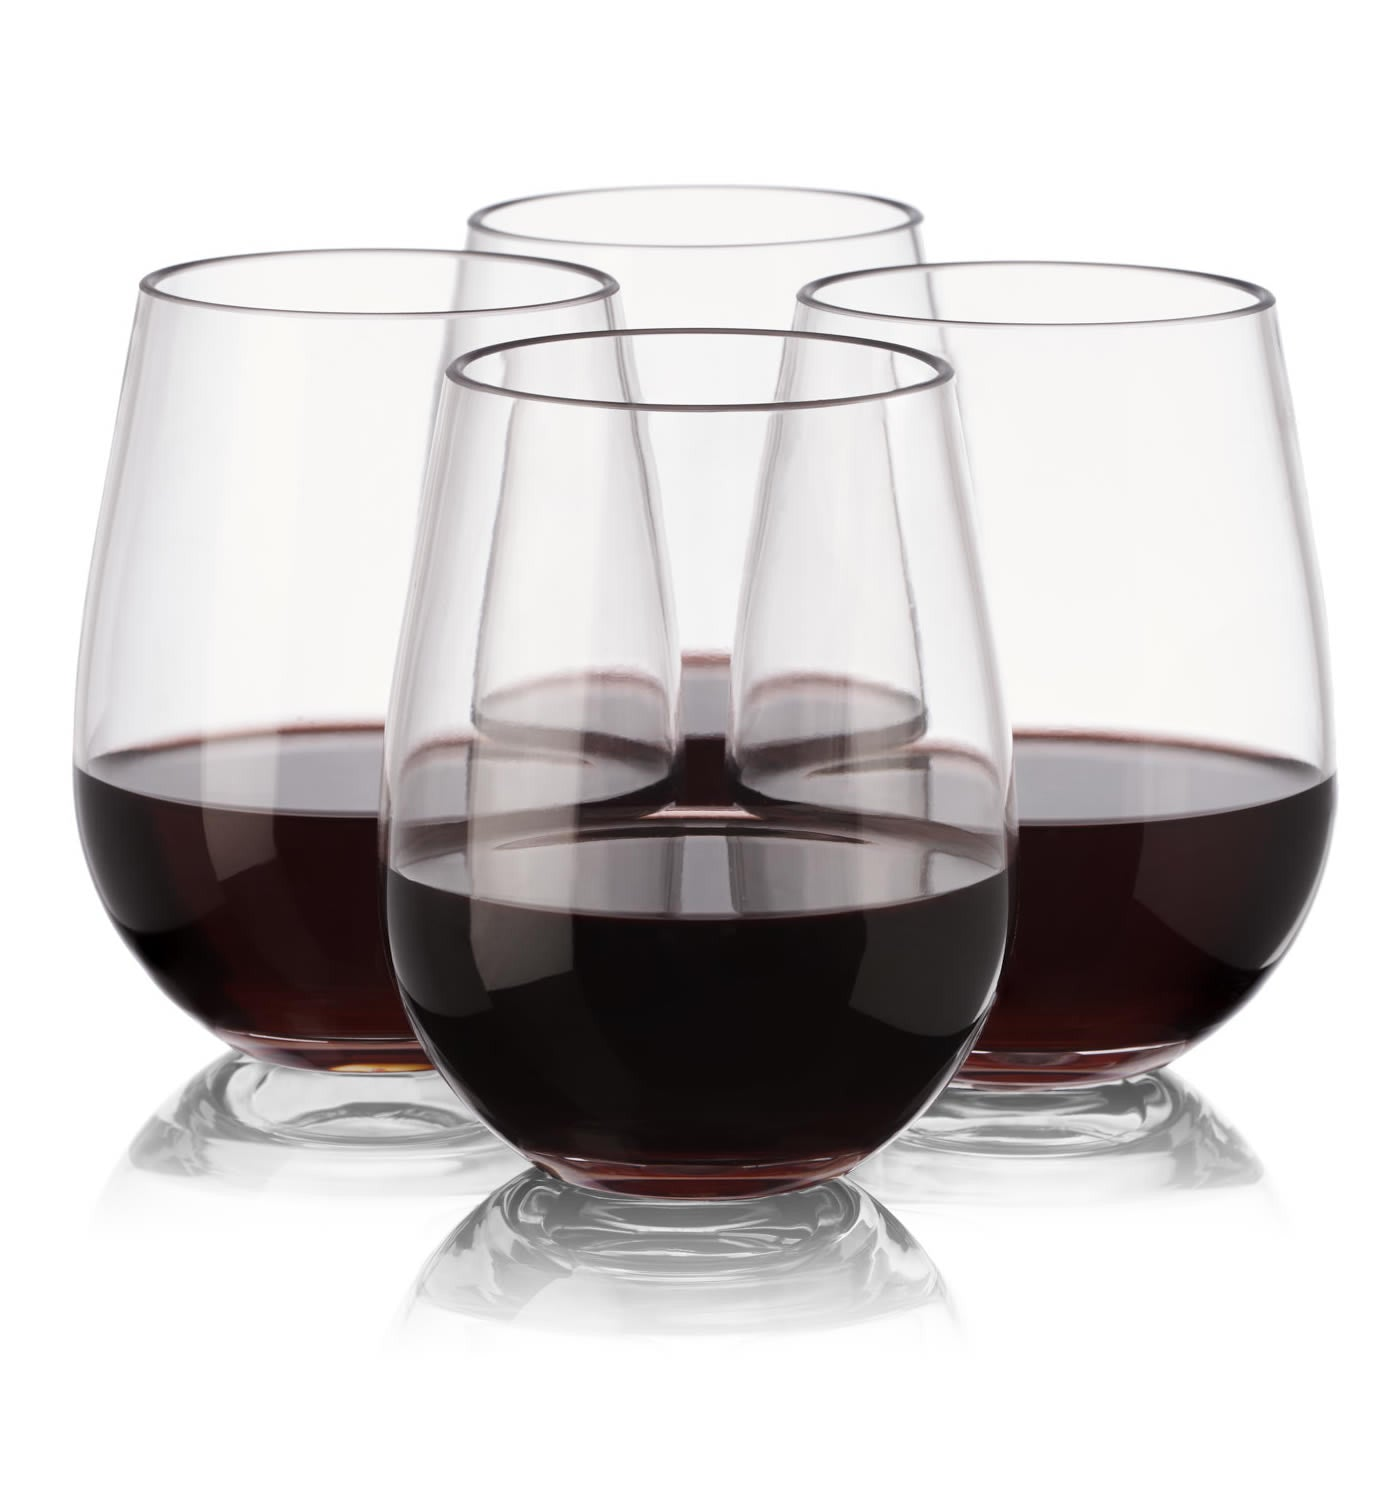 notmog 24 stemless glasses wholesale set unbreakable reusable plastic wine drinking glass outdoor tumbler 450ml 16oz